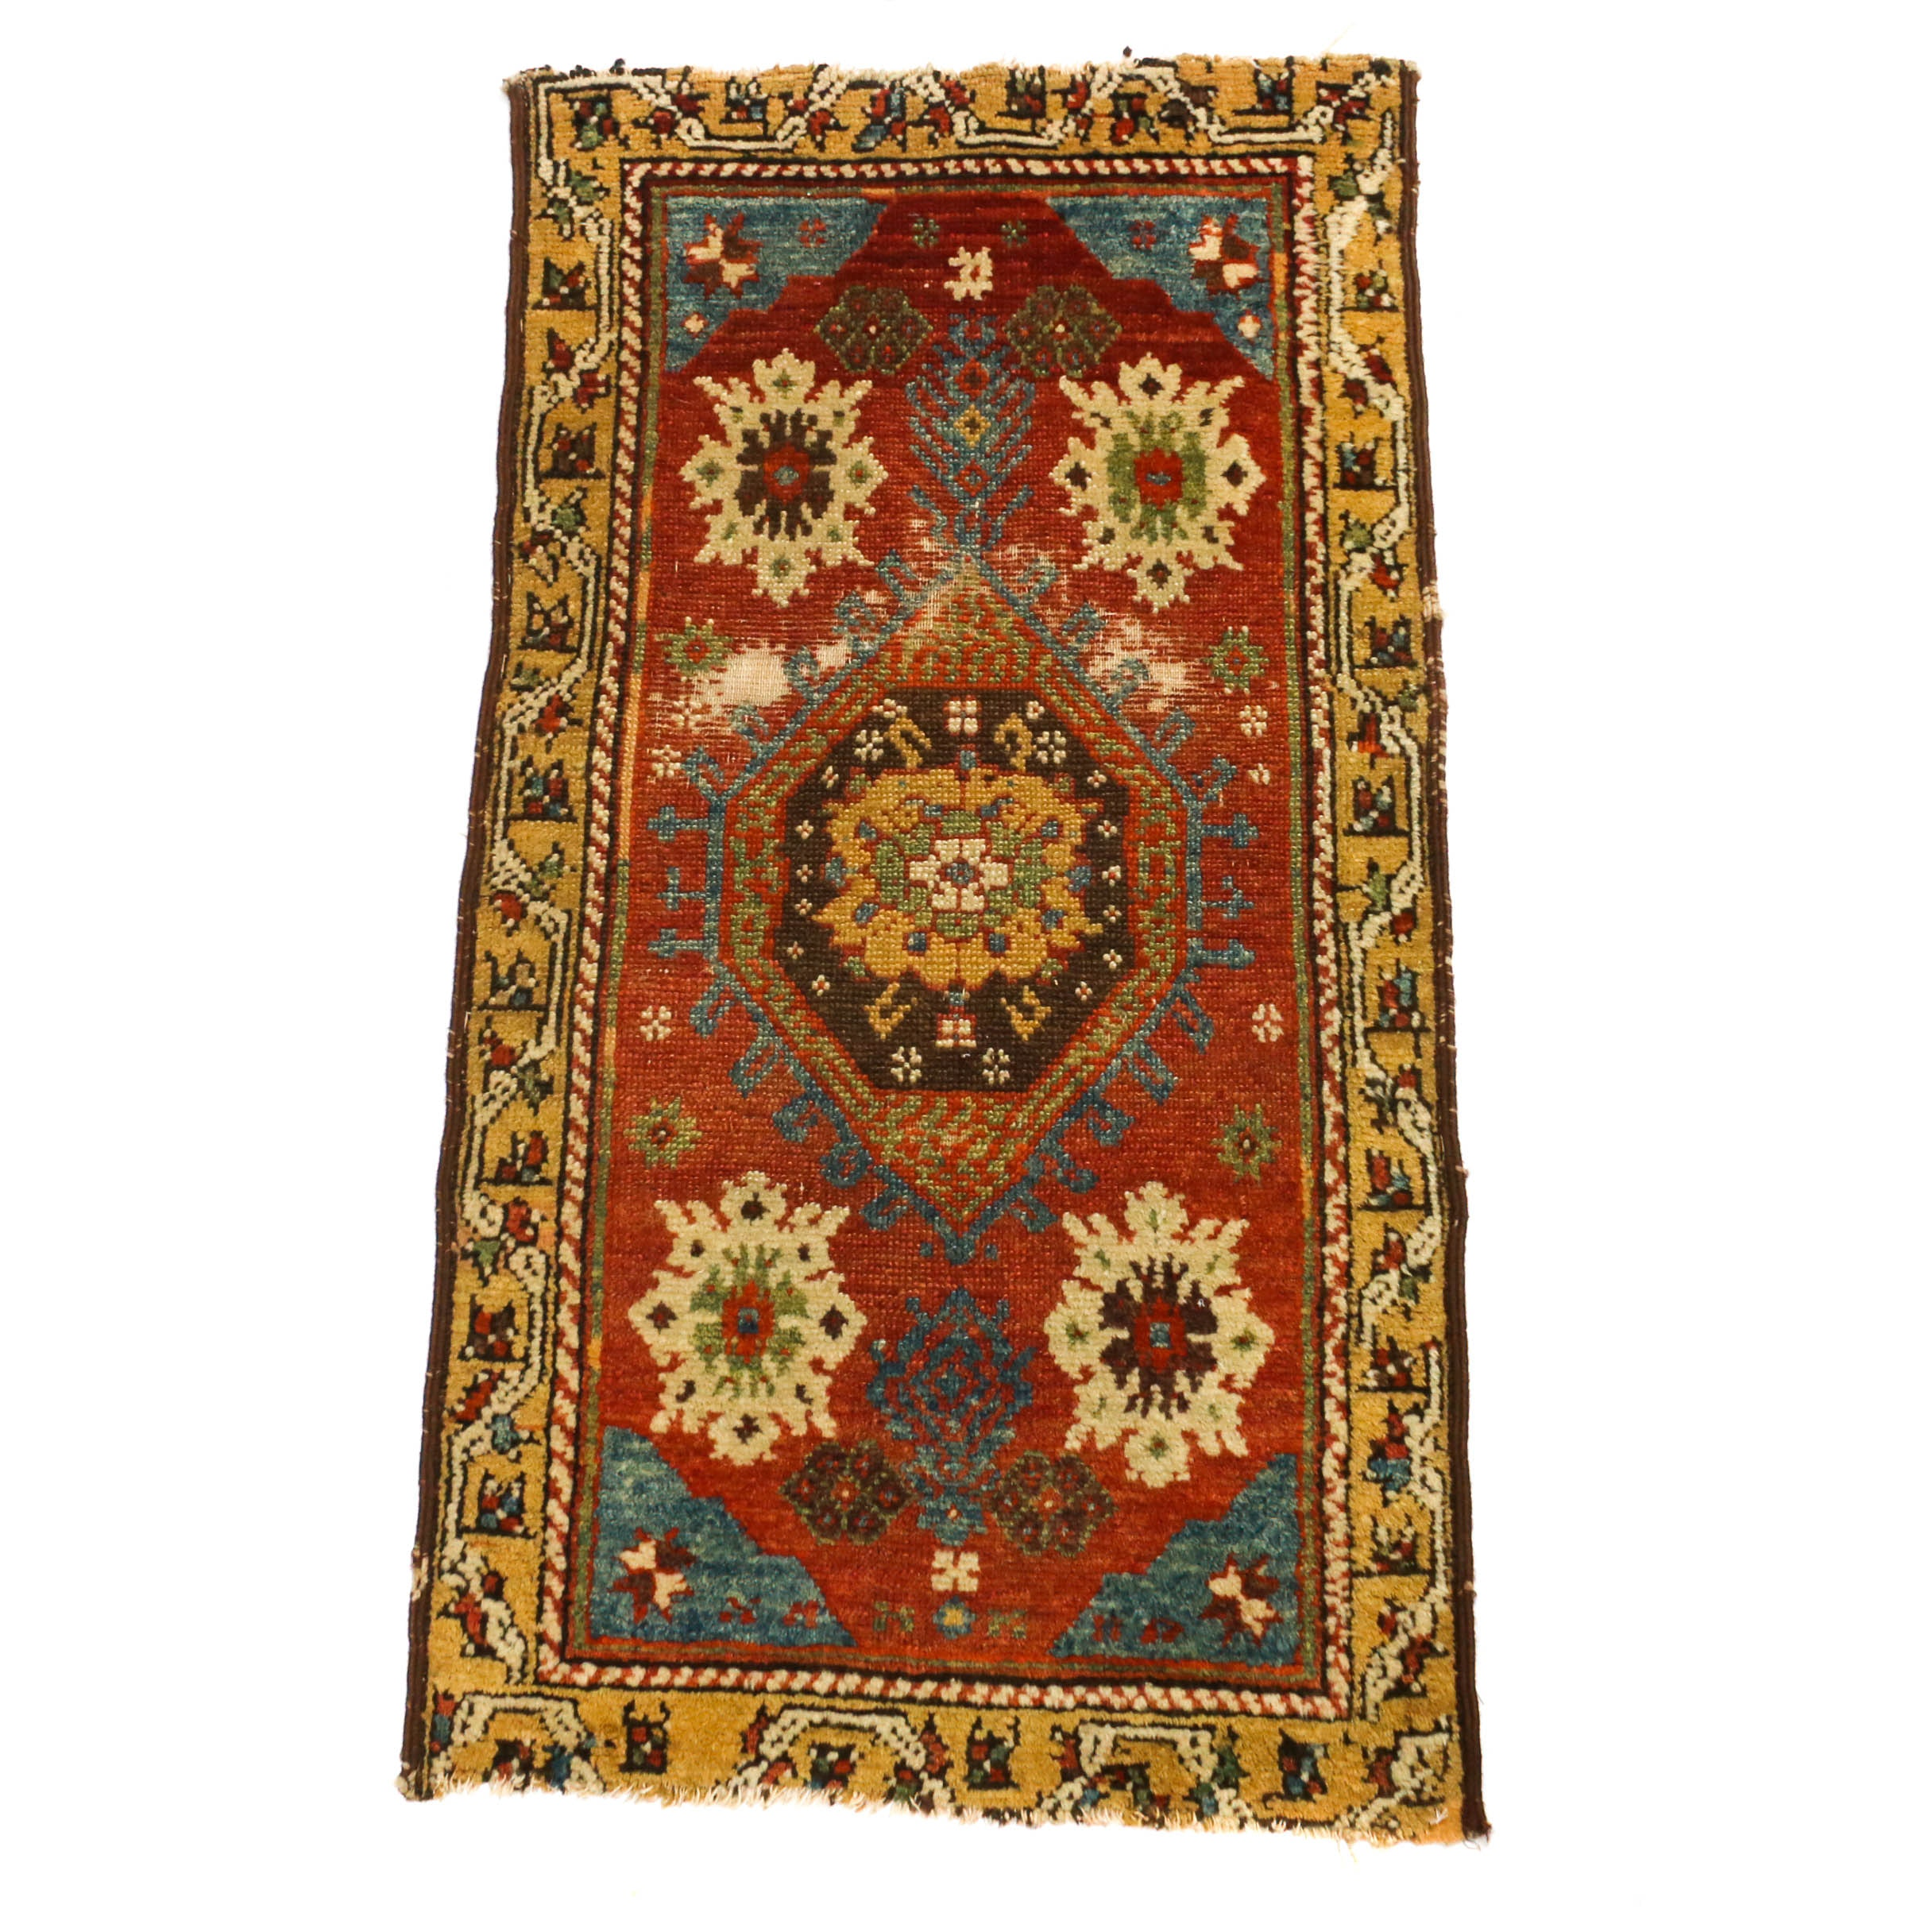 1'9 x 3'3 Hand-Knotted Turkish Oushak Wool Rug, Circa 1910